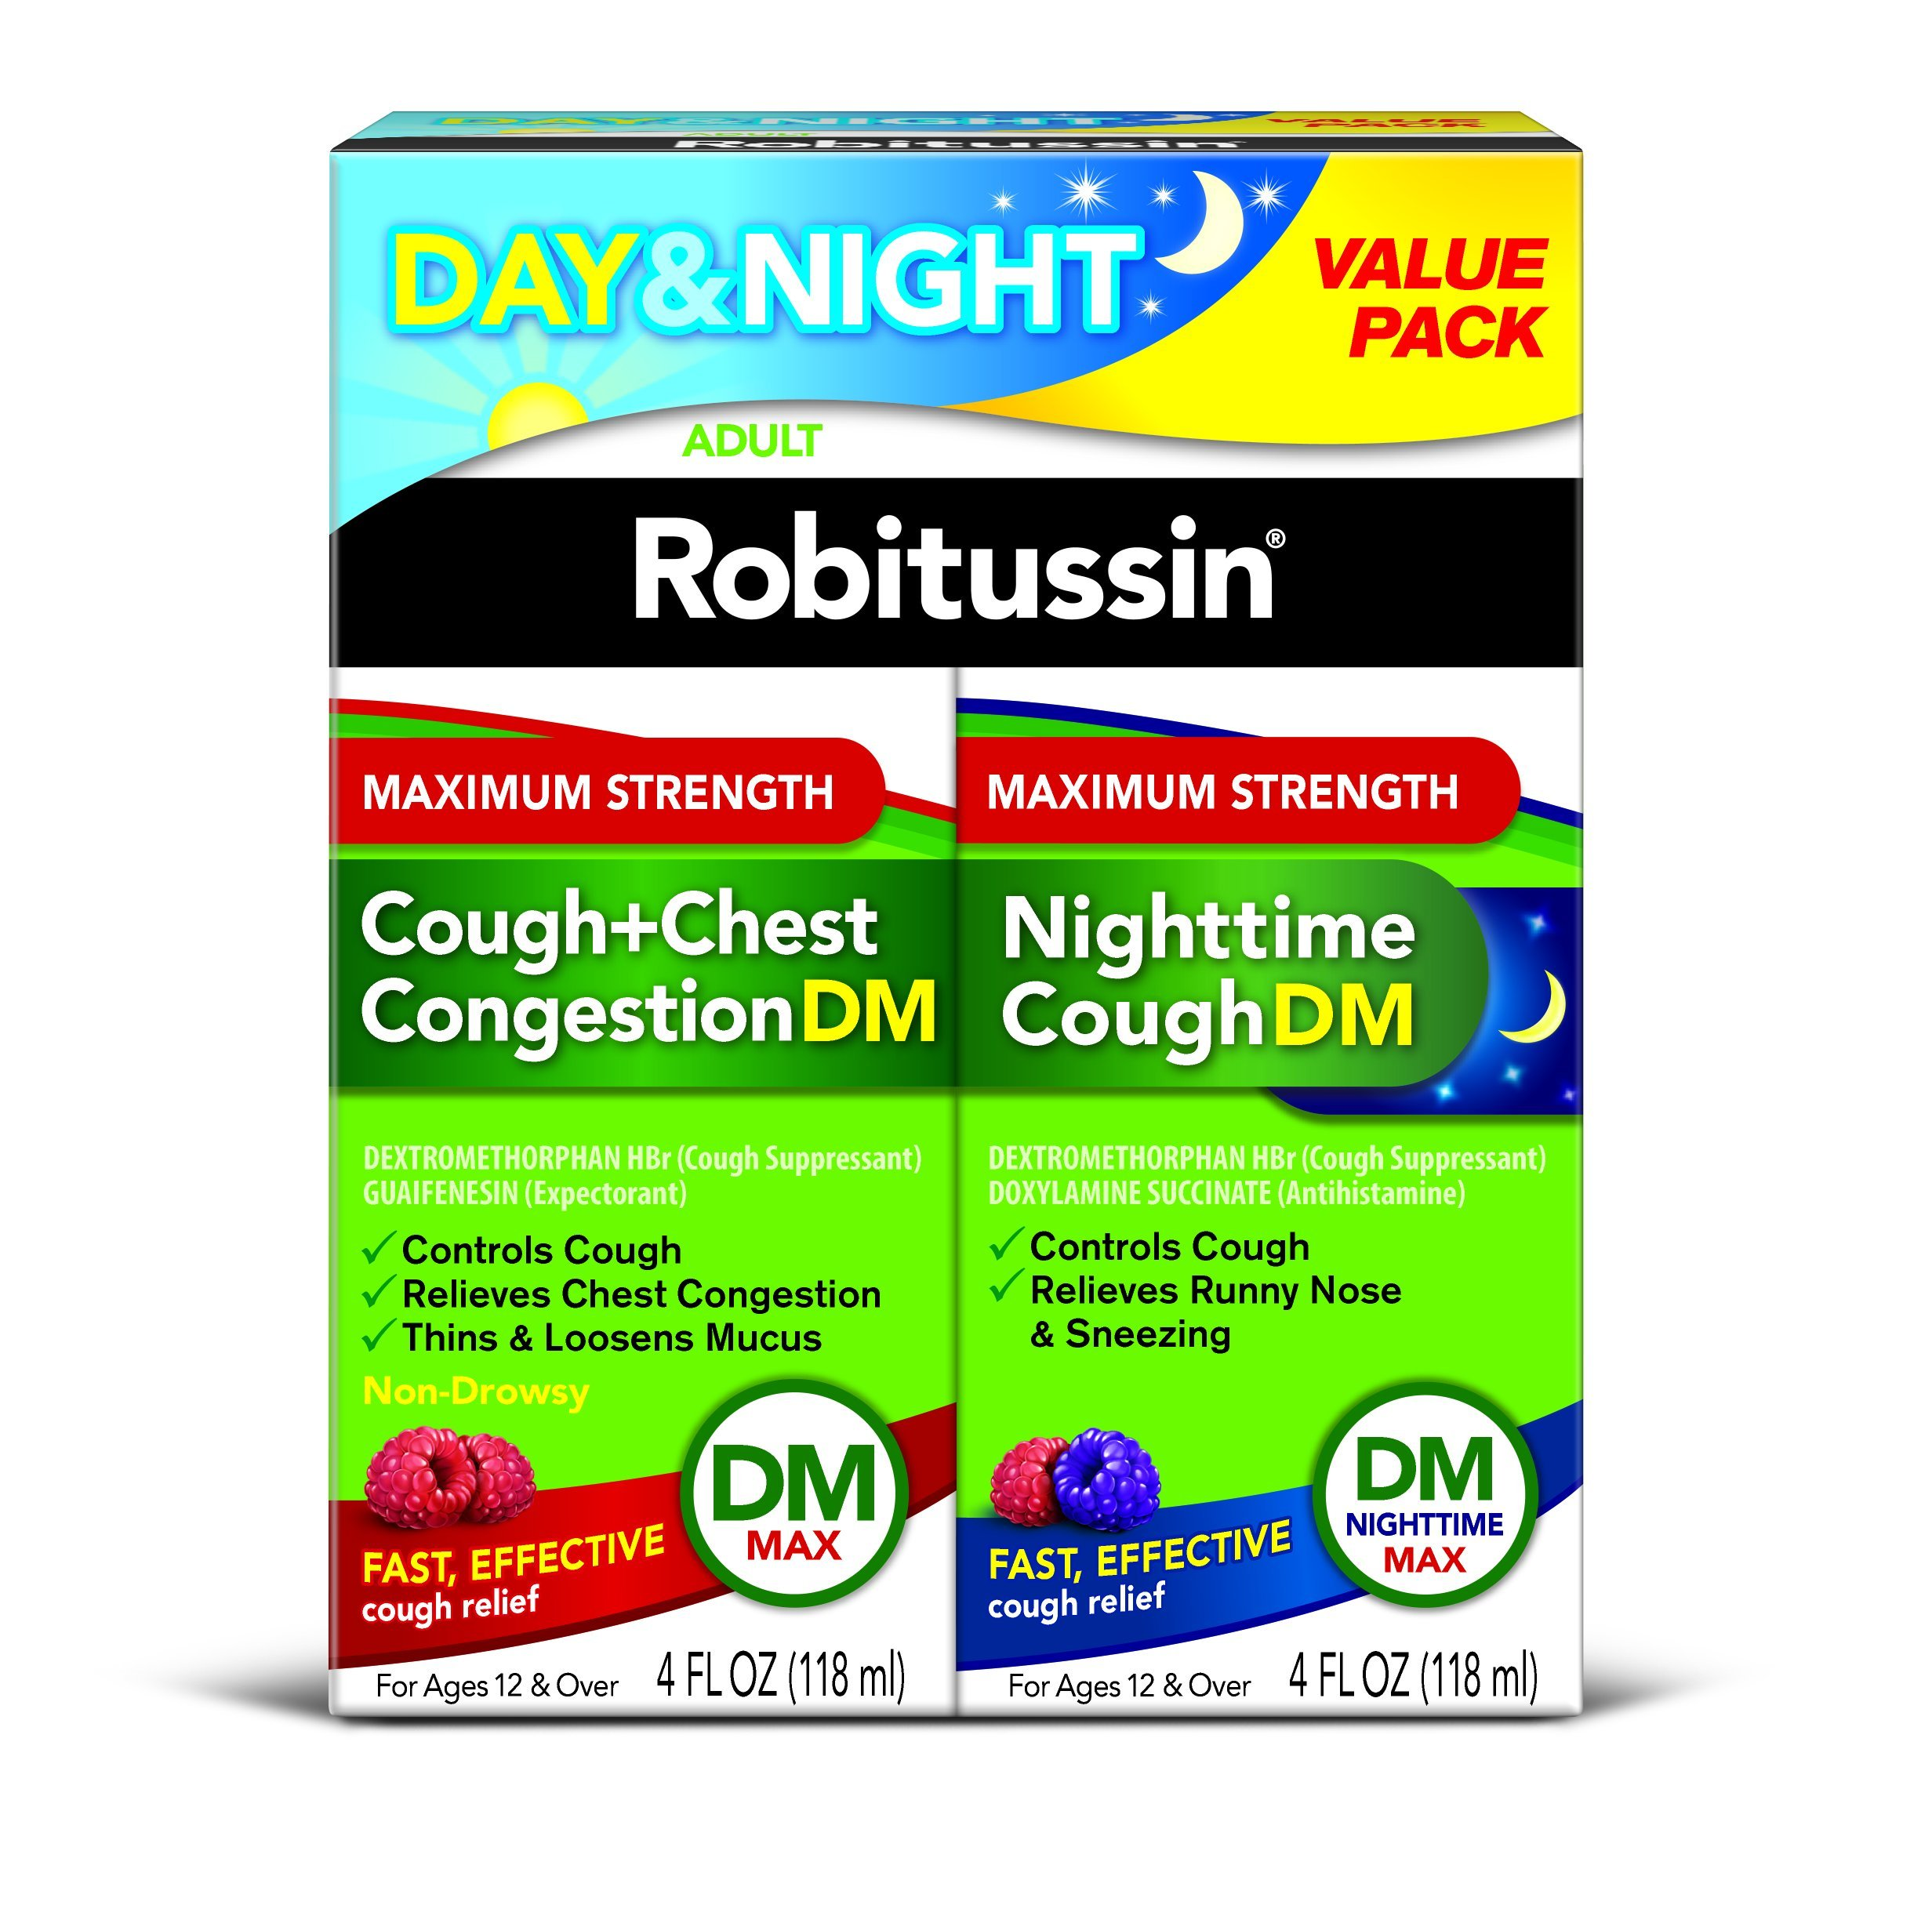 Robitussin Day & Night Max Strength Cough + Chest Congestion DM/Nighttime Cough DM Max, 4 Fl Oz, 2Count by Robitussin